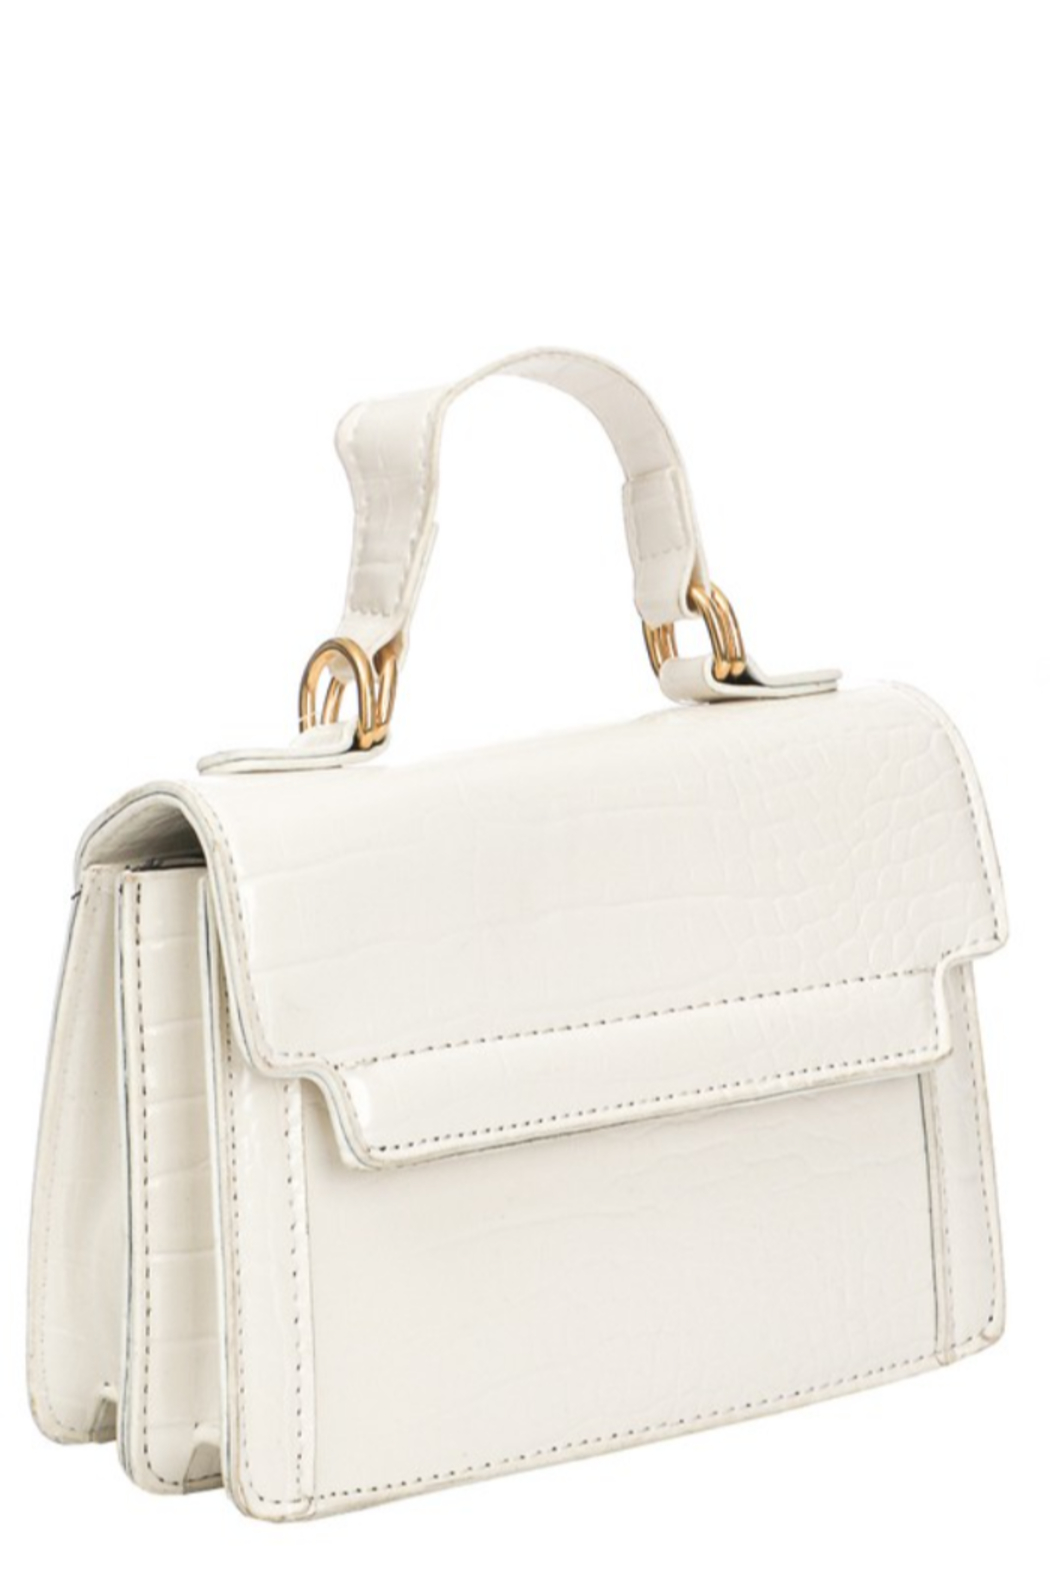 Fame Accessories Mischa Mini Bag - Front Cropped Image